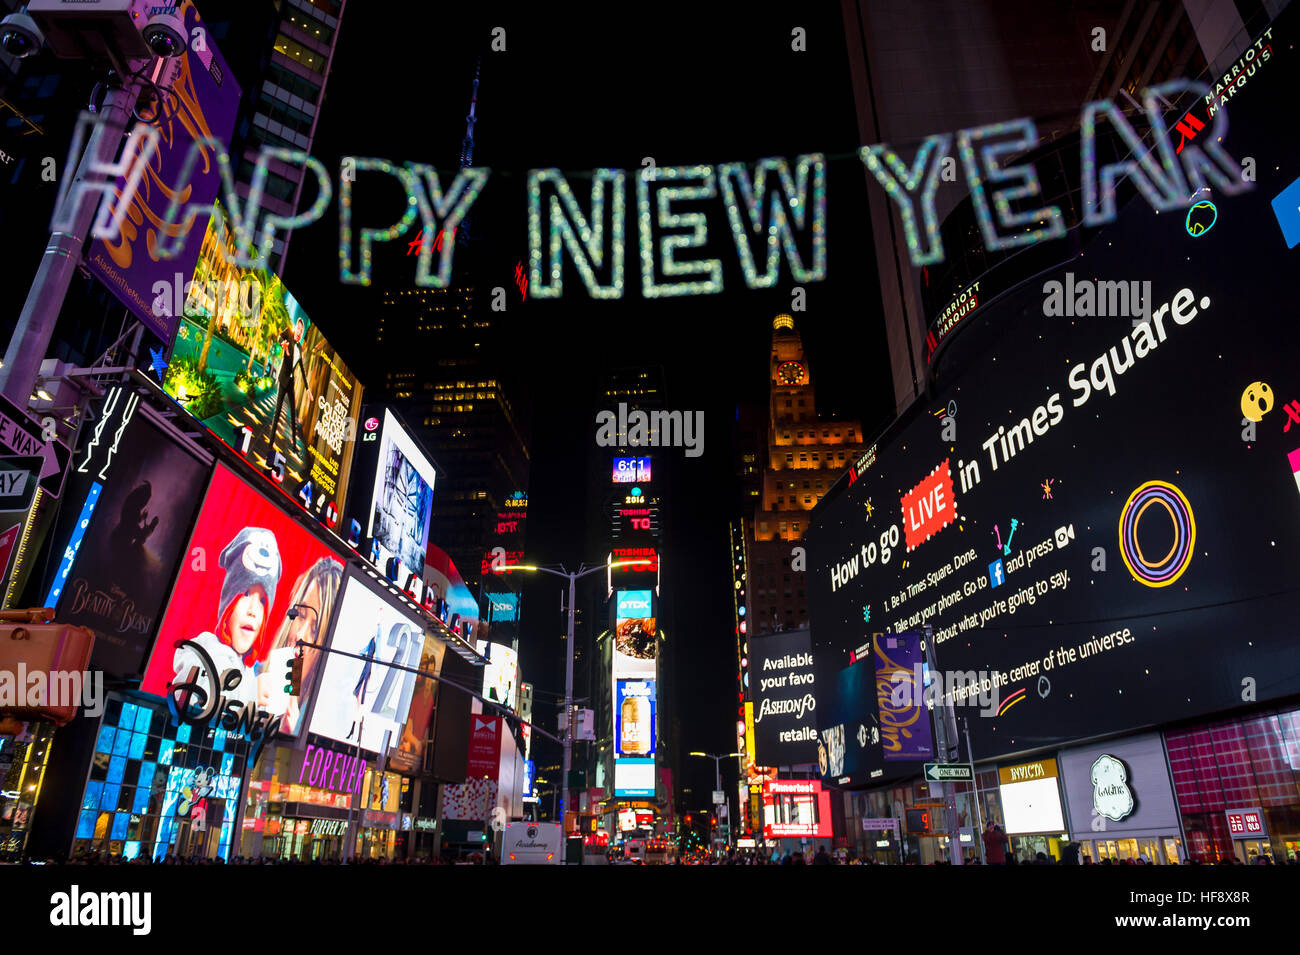 new york city december 23 2016 happy new year sign hangs in times square as the city prepares for new years eve